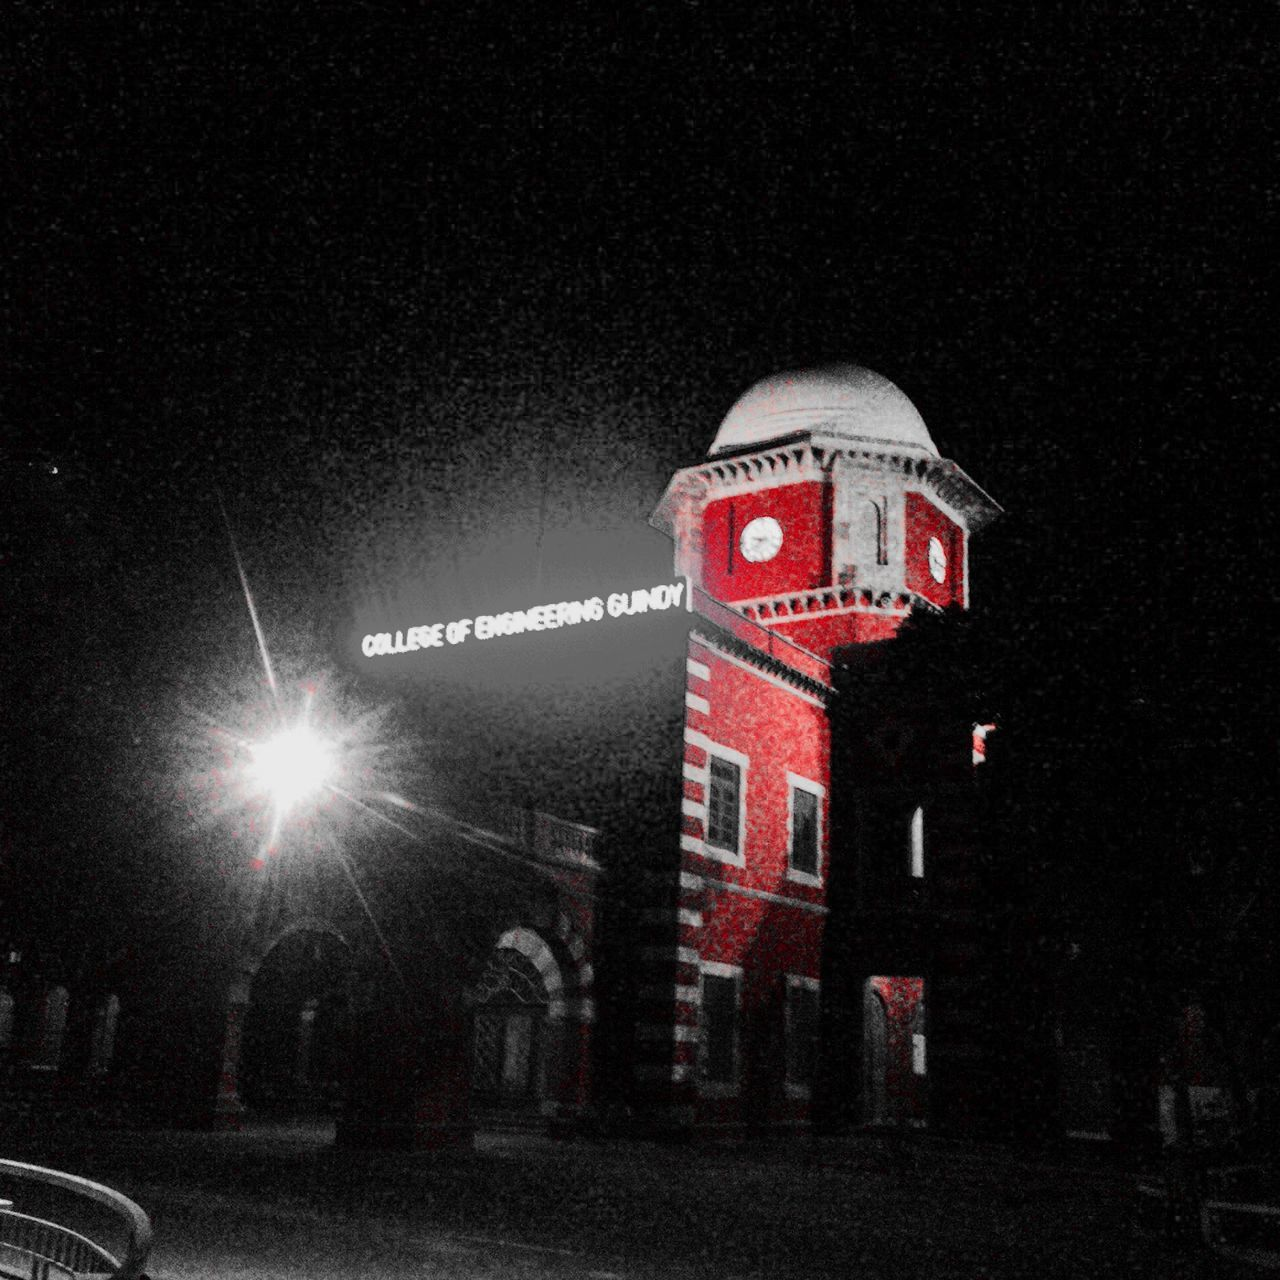 night, building exterior, architecture, red, illuminated, outdoors, built structure, no people, city